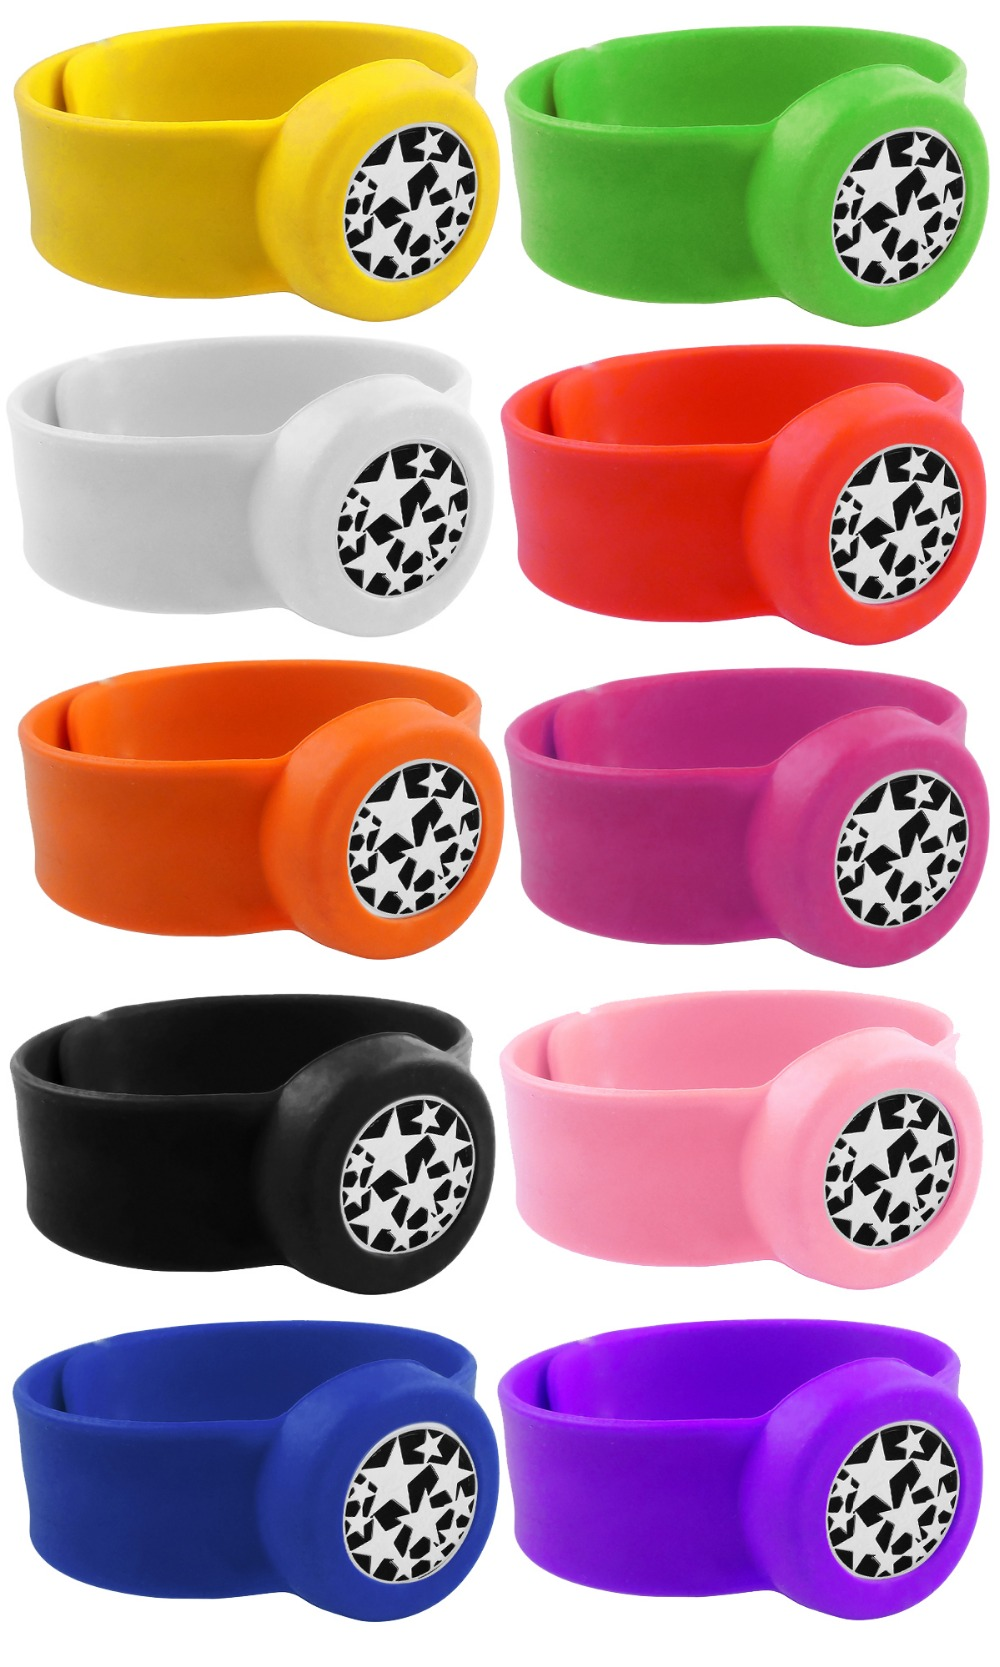 ZP-BS910-0 Silicone Diffuser Locket Bracelet-6